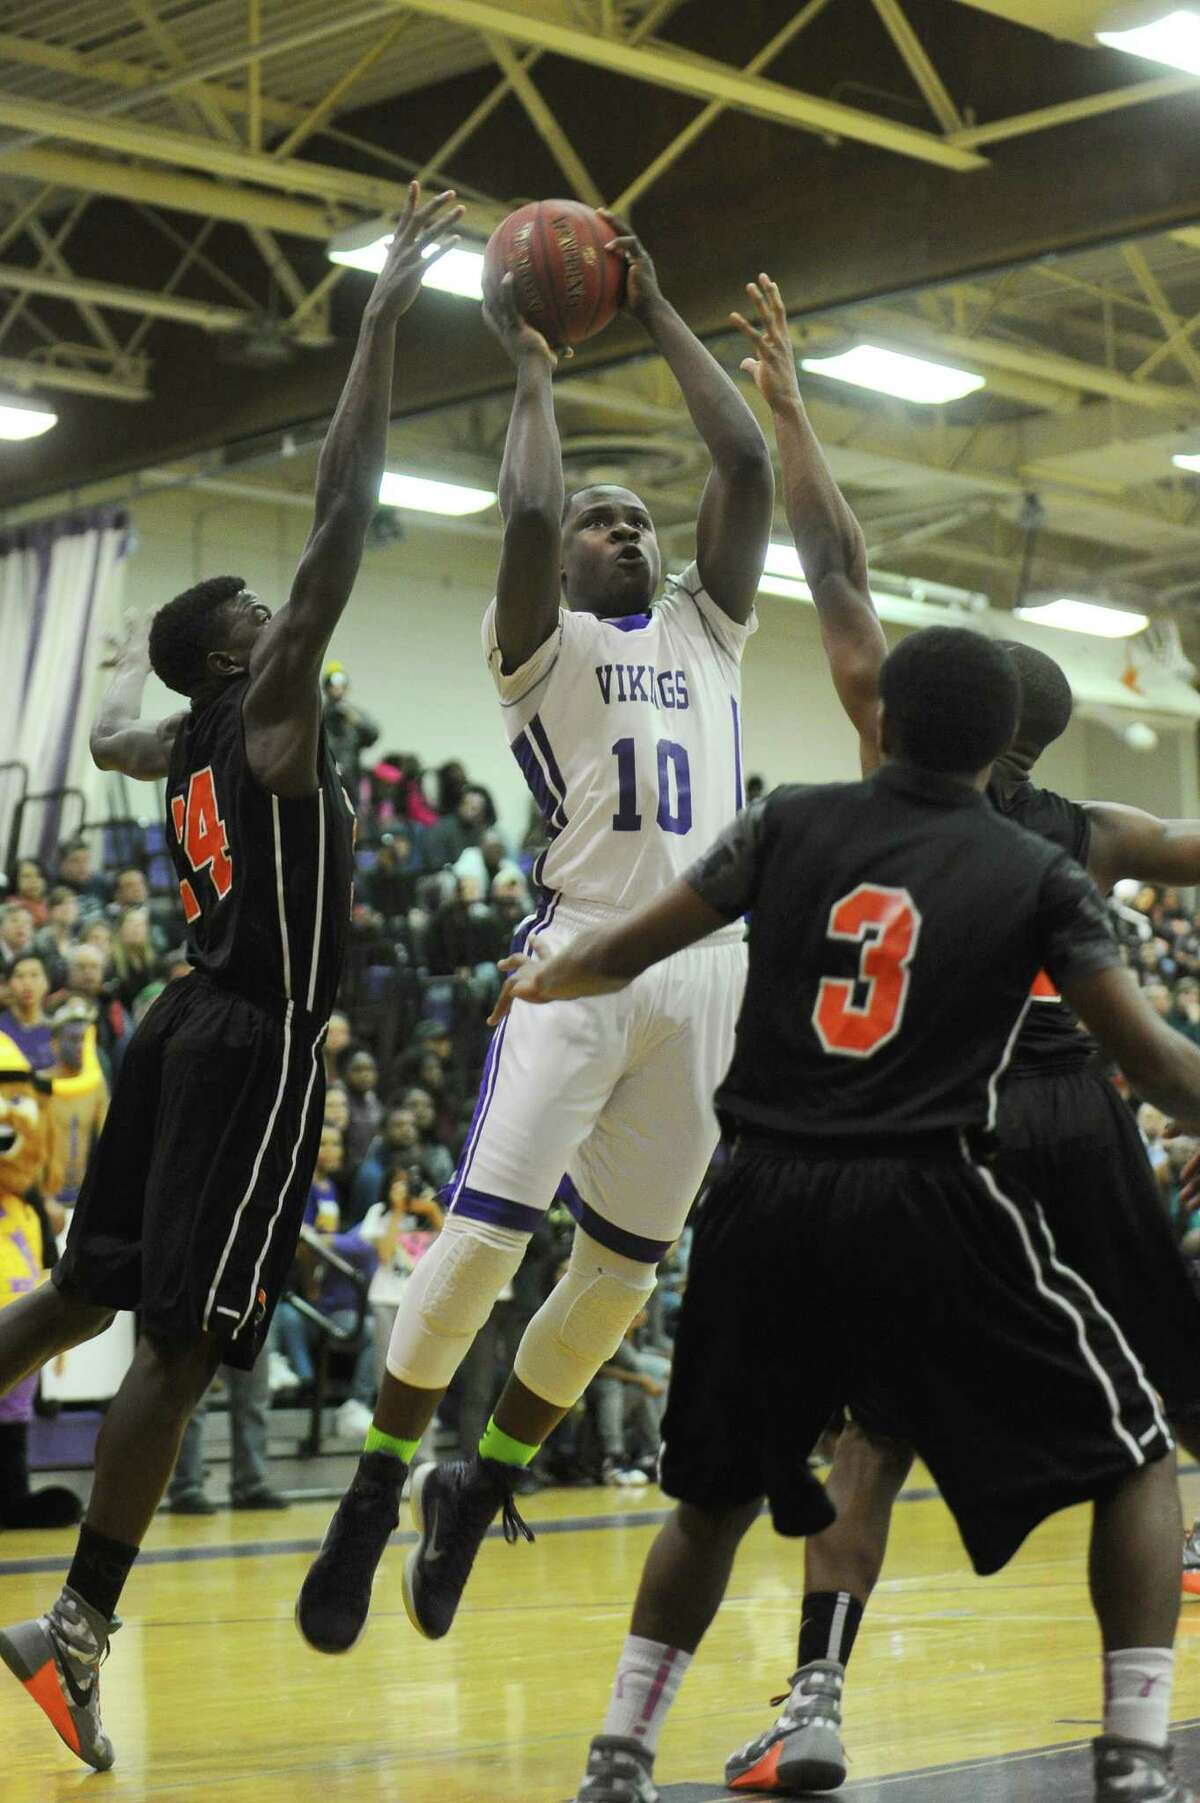 Westhill senior Tyrell Alexander gets a shot off between three Stamford High defenders during the first quarter of the game at Westhill High School on Monday, Feb. 1, 2016.